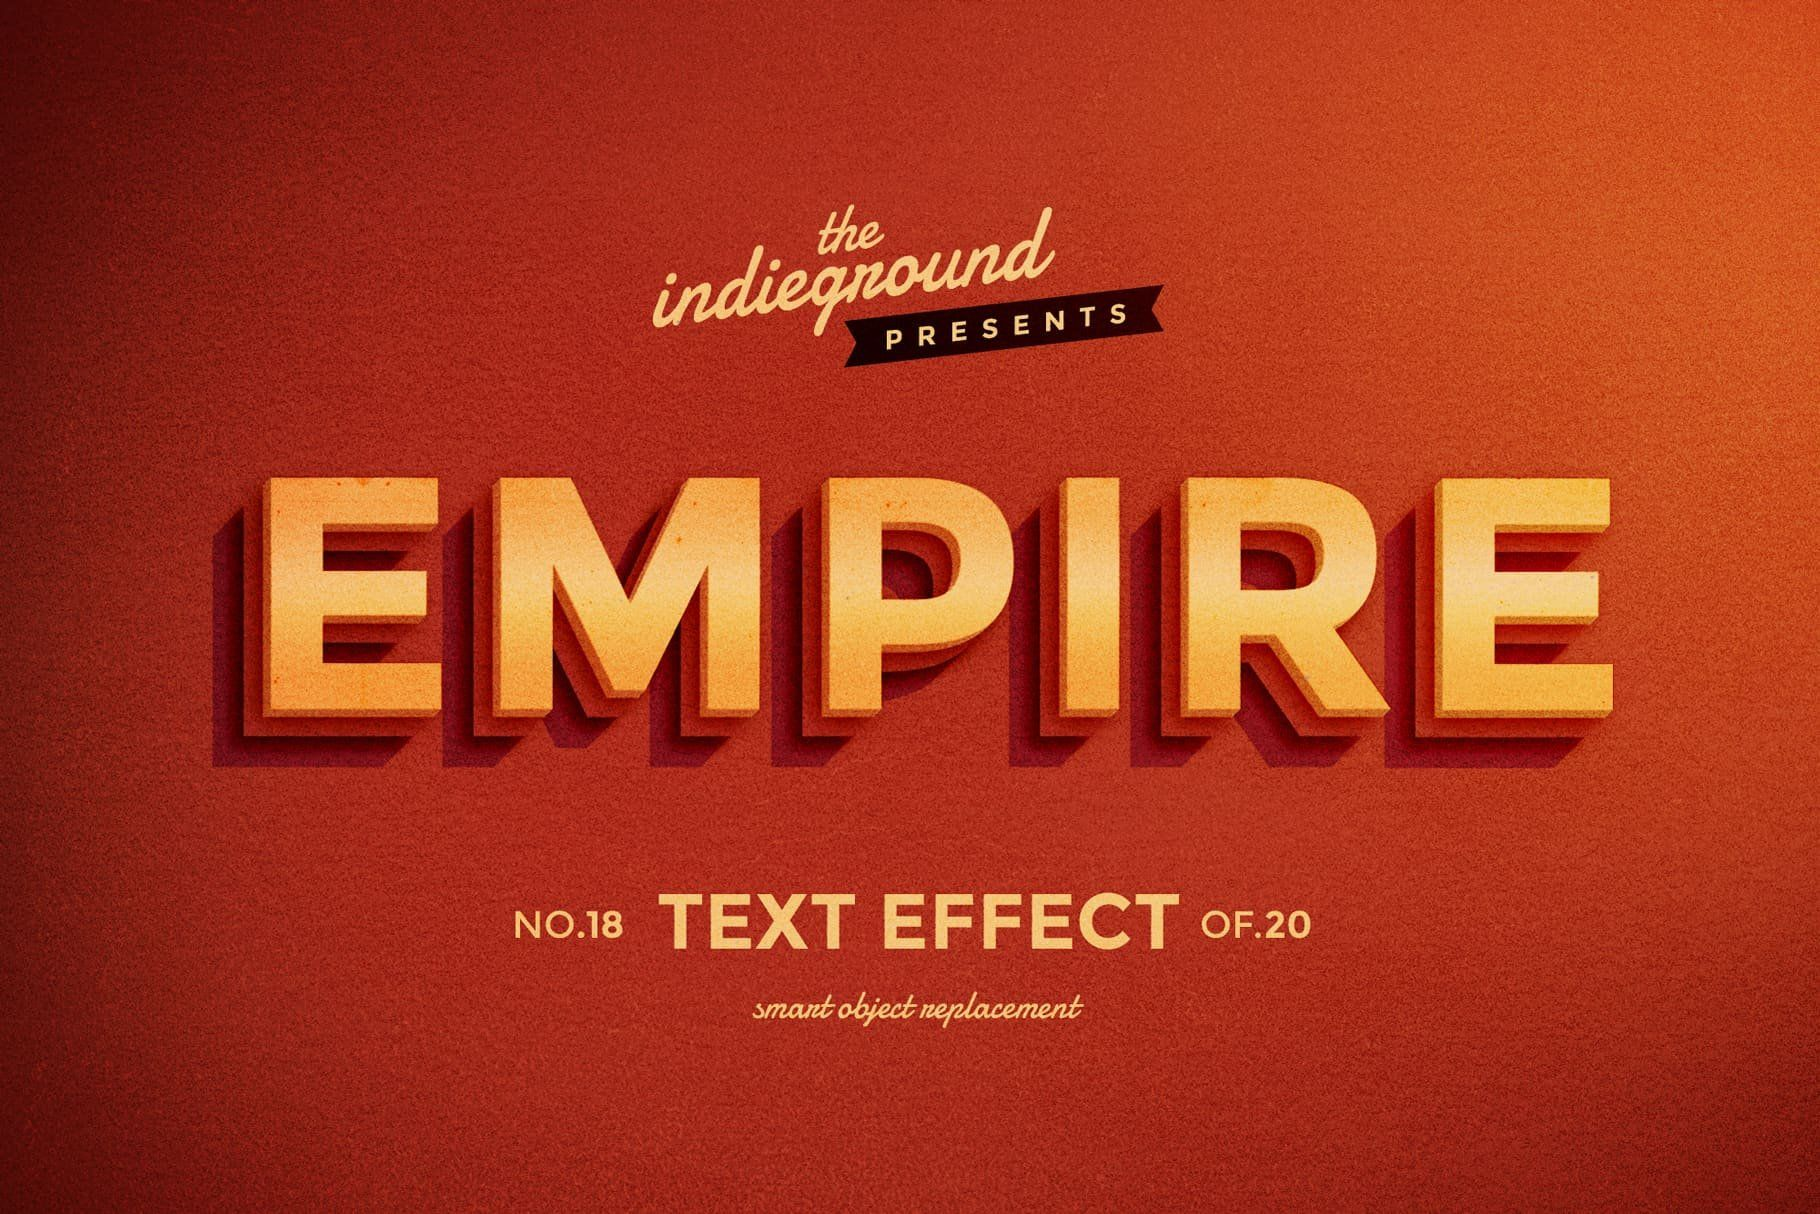 Retro Text Effects Complete Bundle In 2020 Retro Text Text Effects Vintage Text